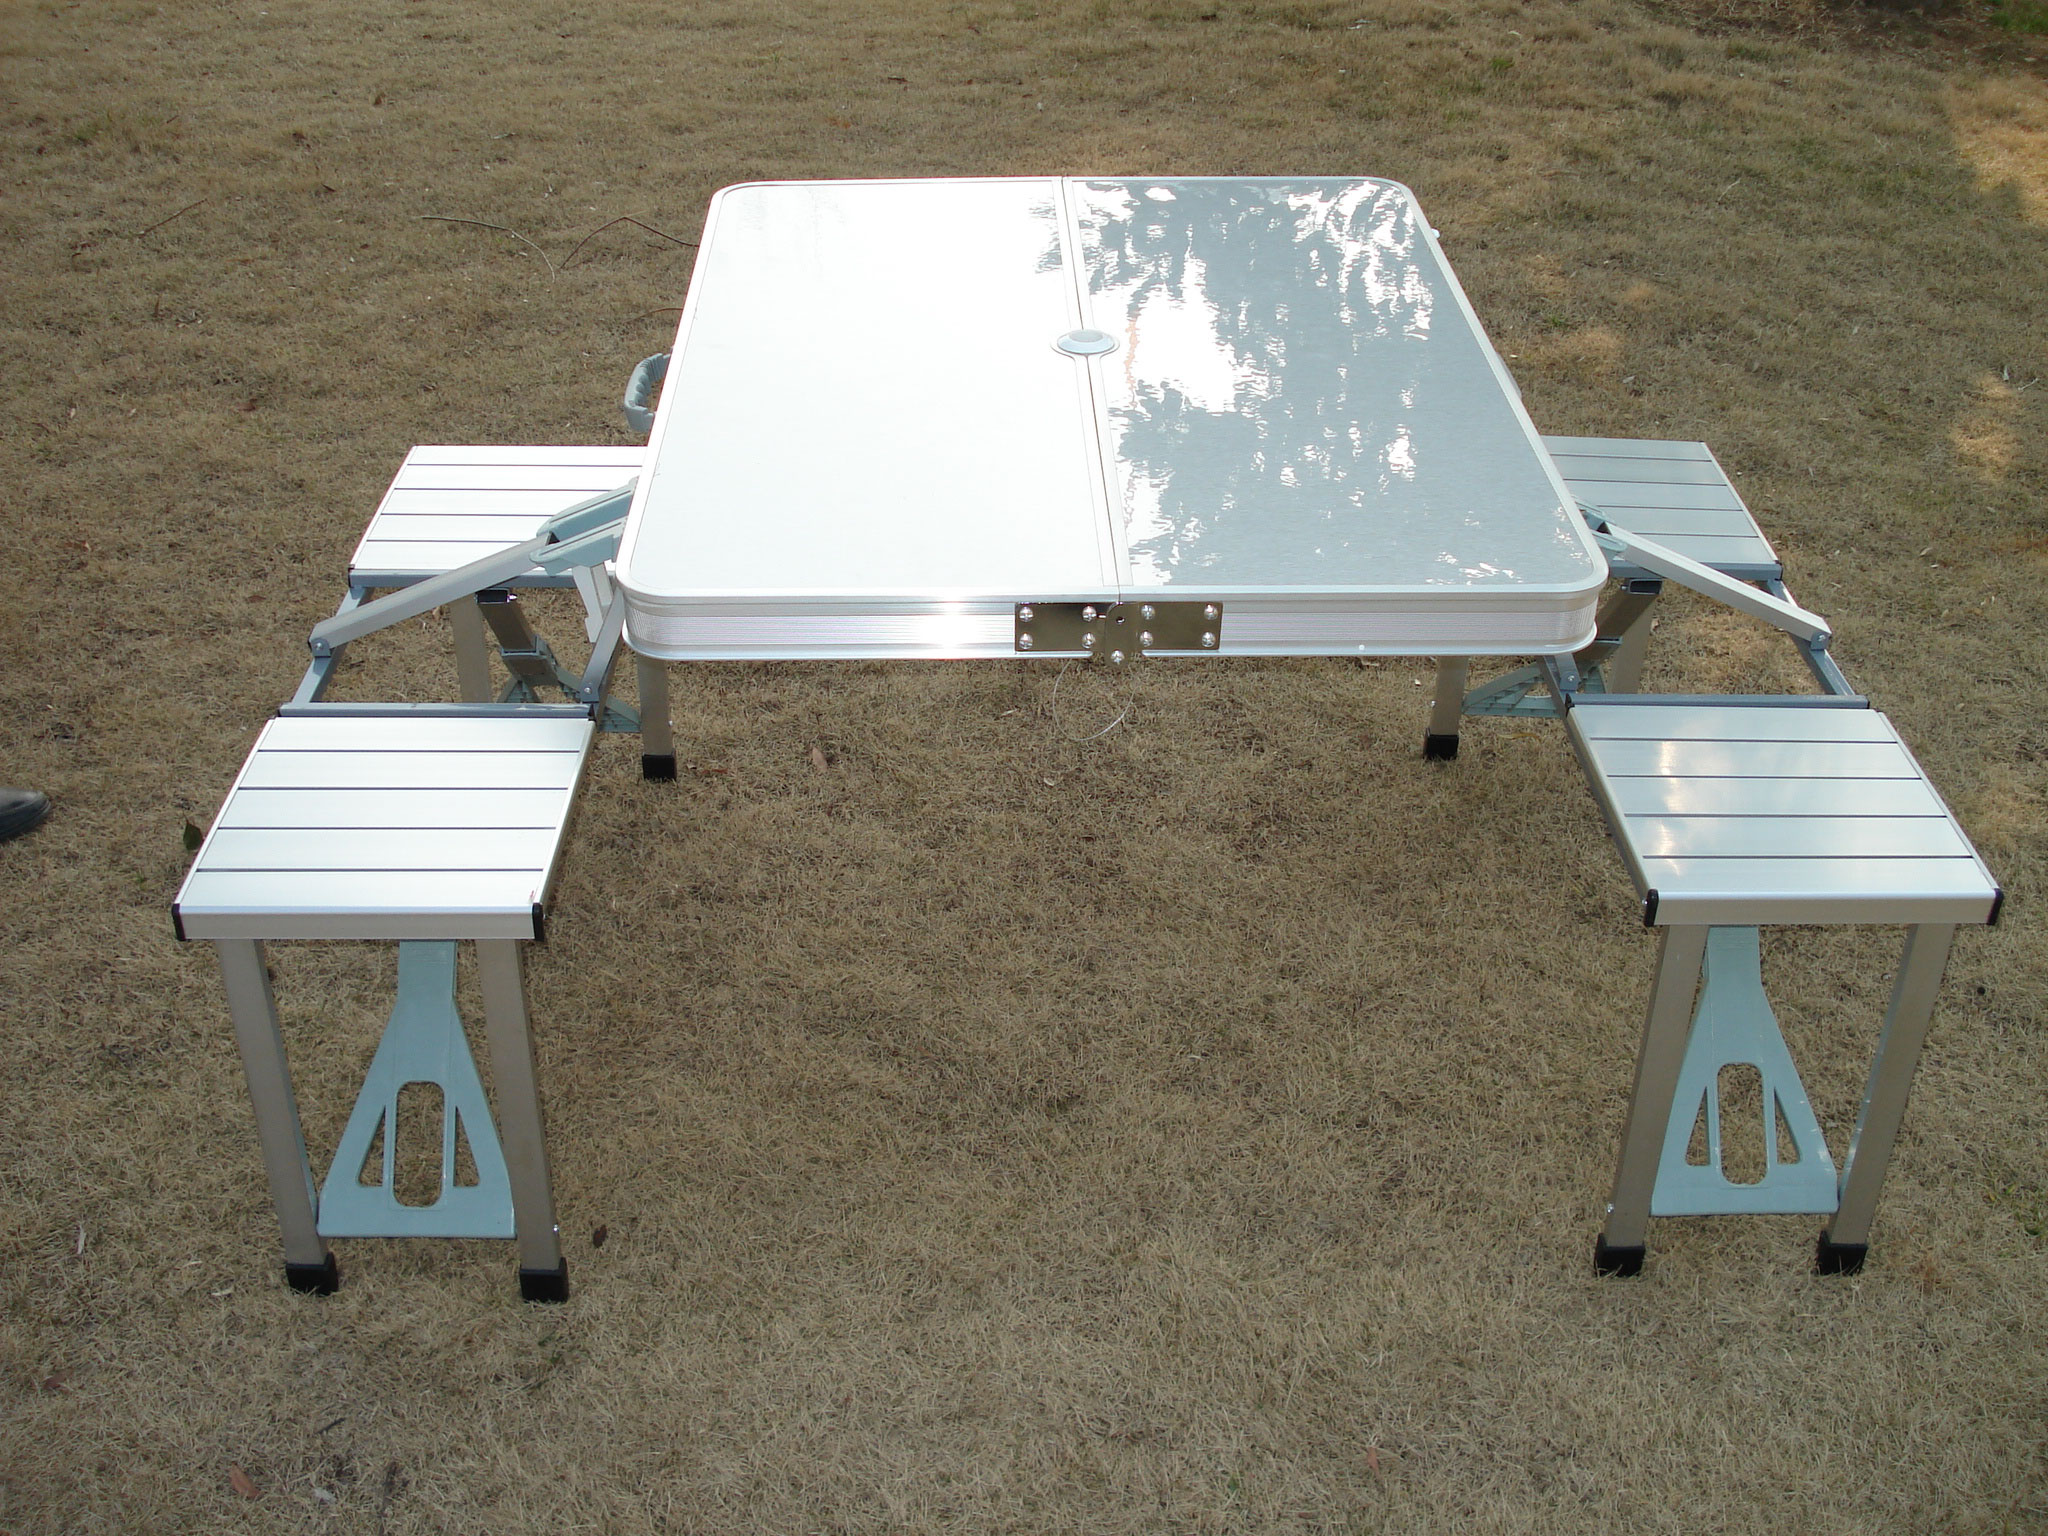 folding tables and chairs,portable table sets,